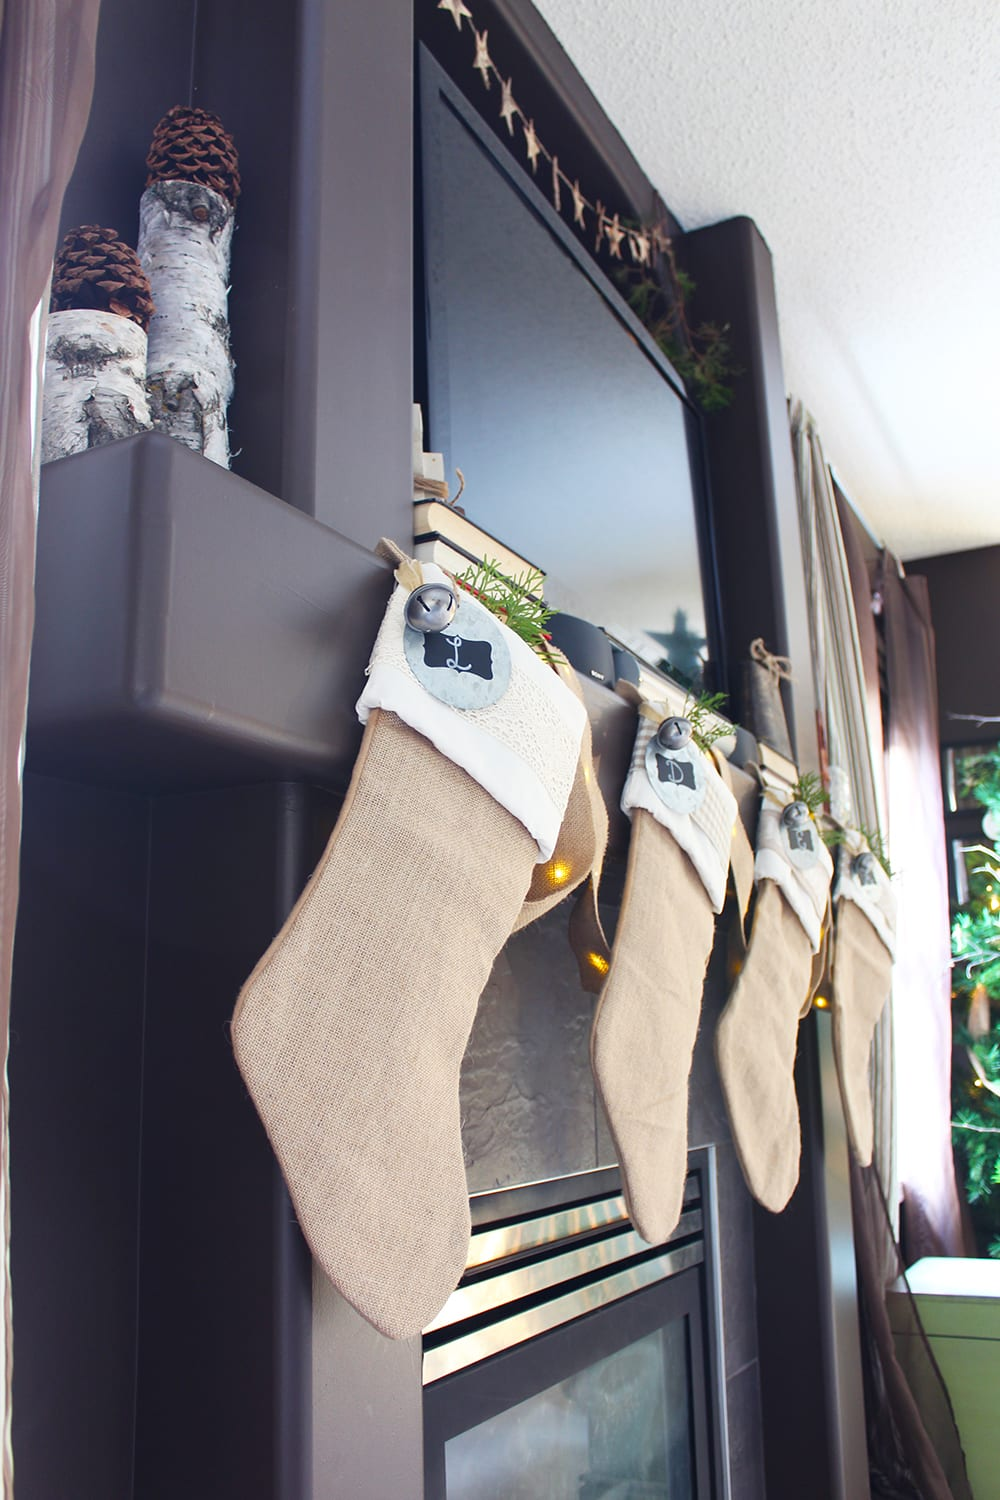 Nature inspired holiday decor featuring burlap stockings, fresh greenery, birch logs and pine cones.